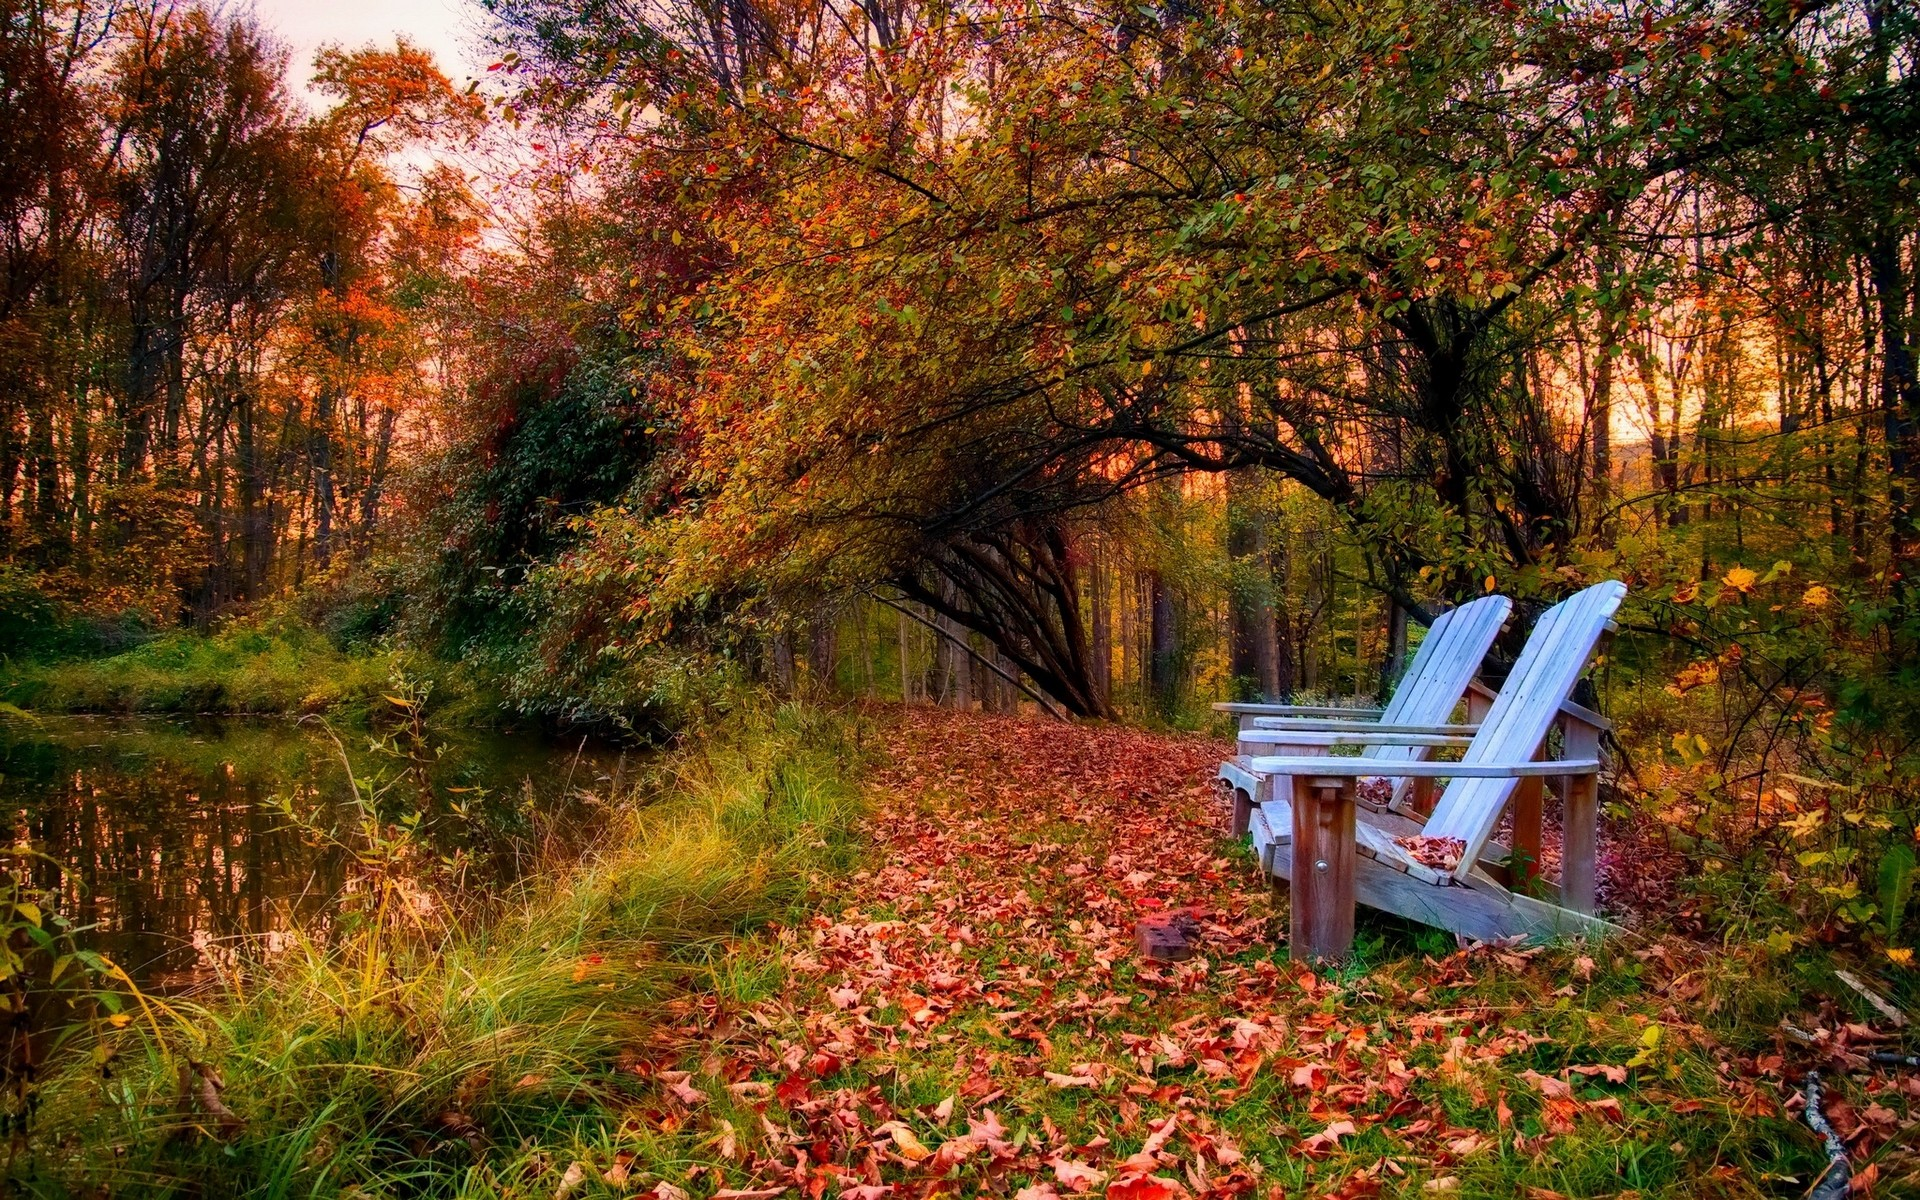 Fall Leaves Watercolor Wallpaper Photography Landscape Nature Park Fall Trees Bench